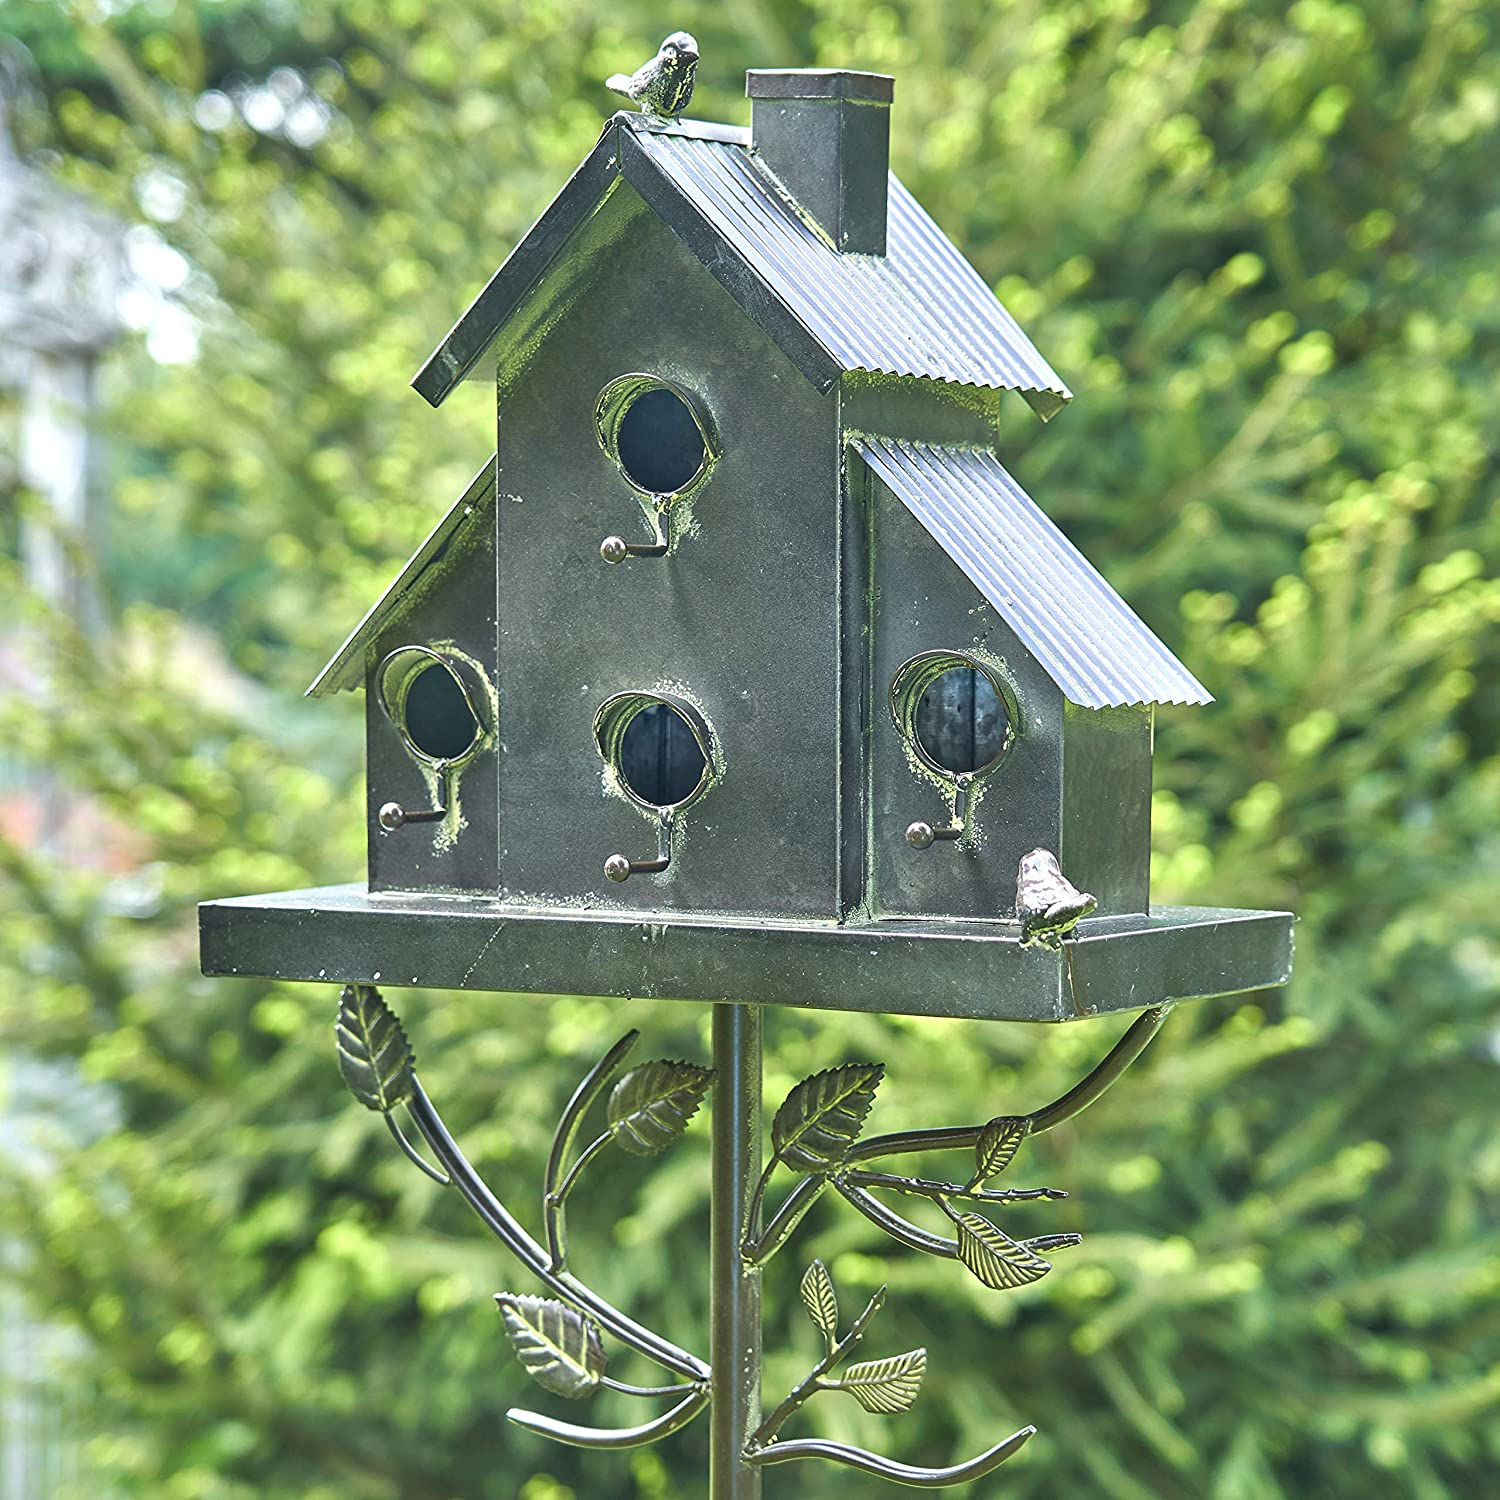 Town House with Tall Chimney Room for 3 Bird Families in Each Garden Home Decoration Handcrafted Large Galvanized Multi-Birdhouse Stakes